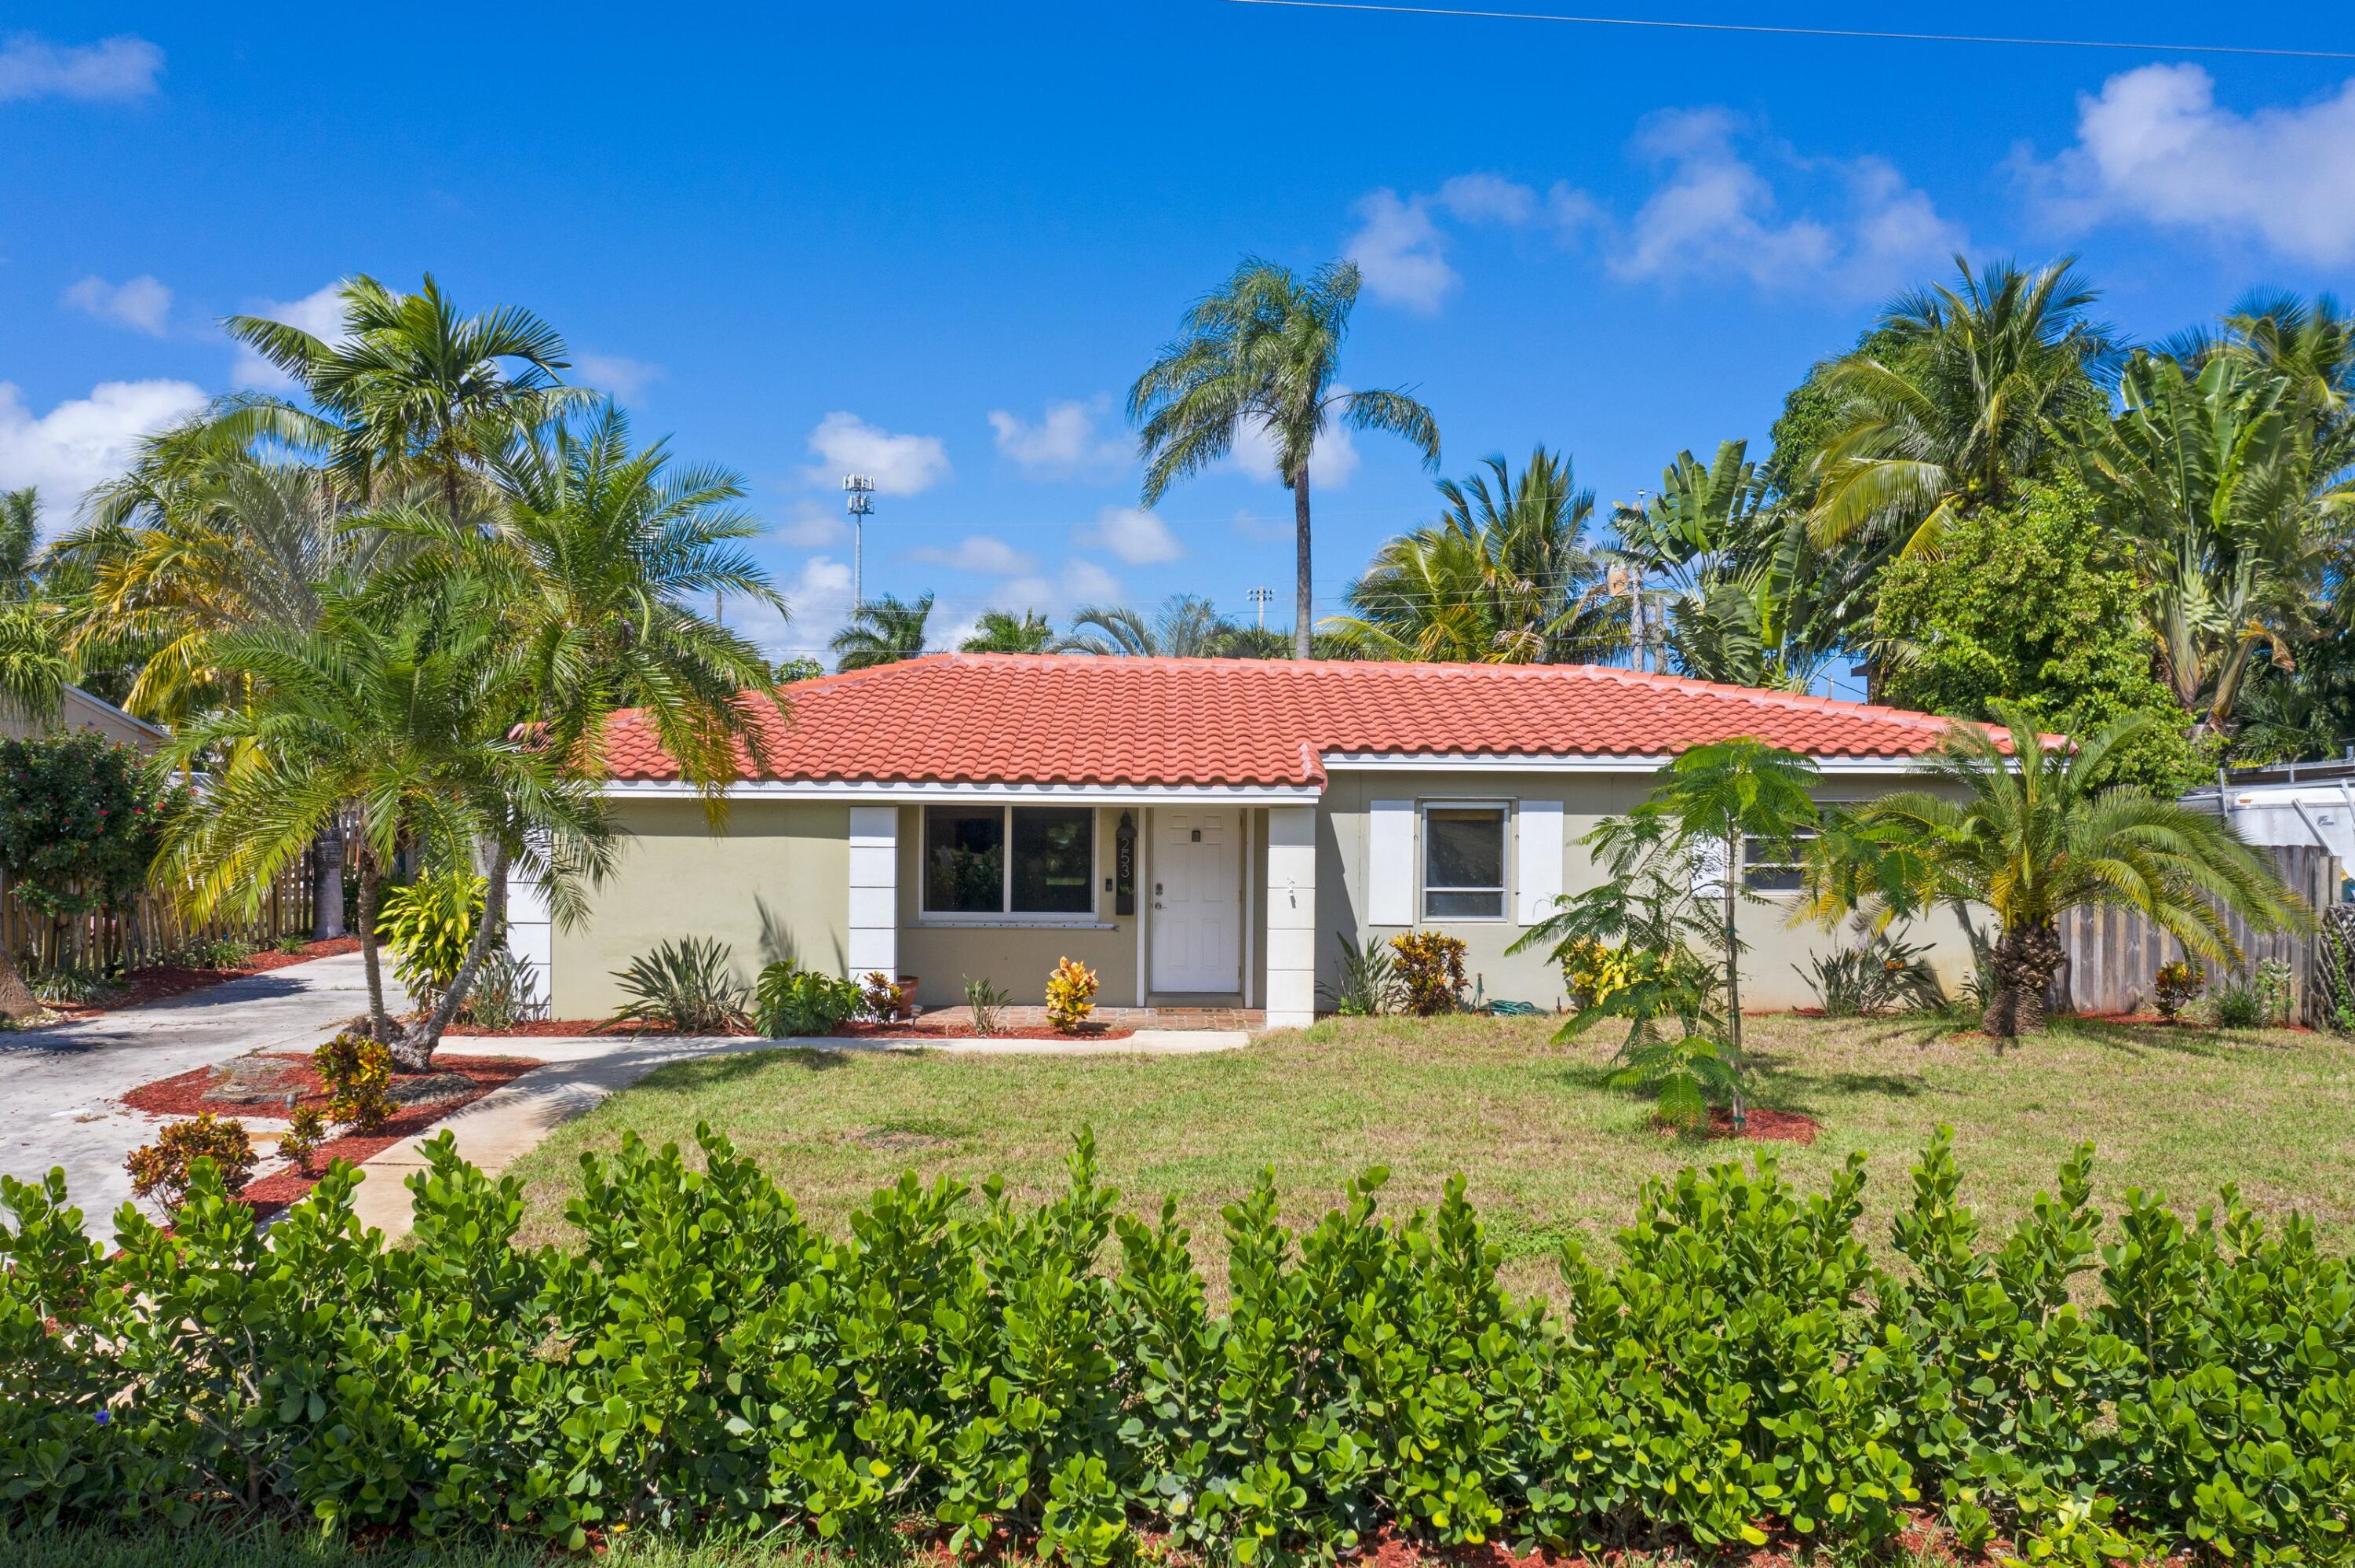 Fabulous opportunity to own in this highly sought after EAST DELRAY neighborhood, minutes from the beach and famed Atlantic Avenue. Make this charming four bedroom, 2 bath ranch style home your own or create a perfect investment opportunity. Graced with a sprawling open floor plan that features a formal living room, dining room, family room and eat-in kitchen with granite countertops and stainless steel appliances. Enjoy effortless indoor/outdoor entertaining in the spacious family room with stone fireplace that opens onto the 320 sq foot screened in covered patio. Highlighted features include a NEW ROOF, installed in December 2020, new A/C, and newly installed partial impact glass. Air conditioned shed/storage room can be easily converted into a studio or used for additional storage.